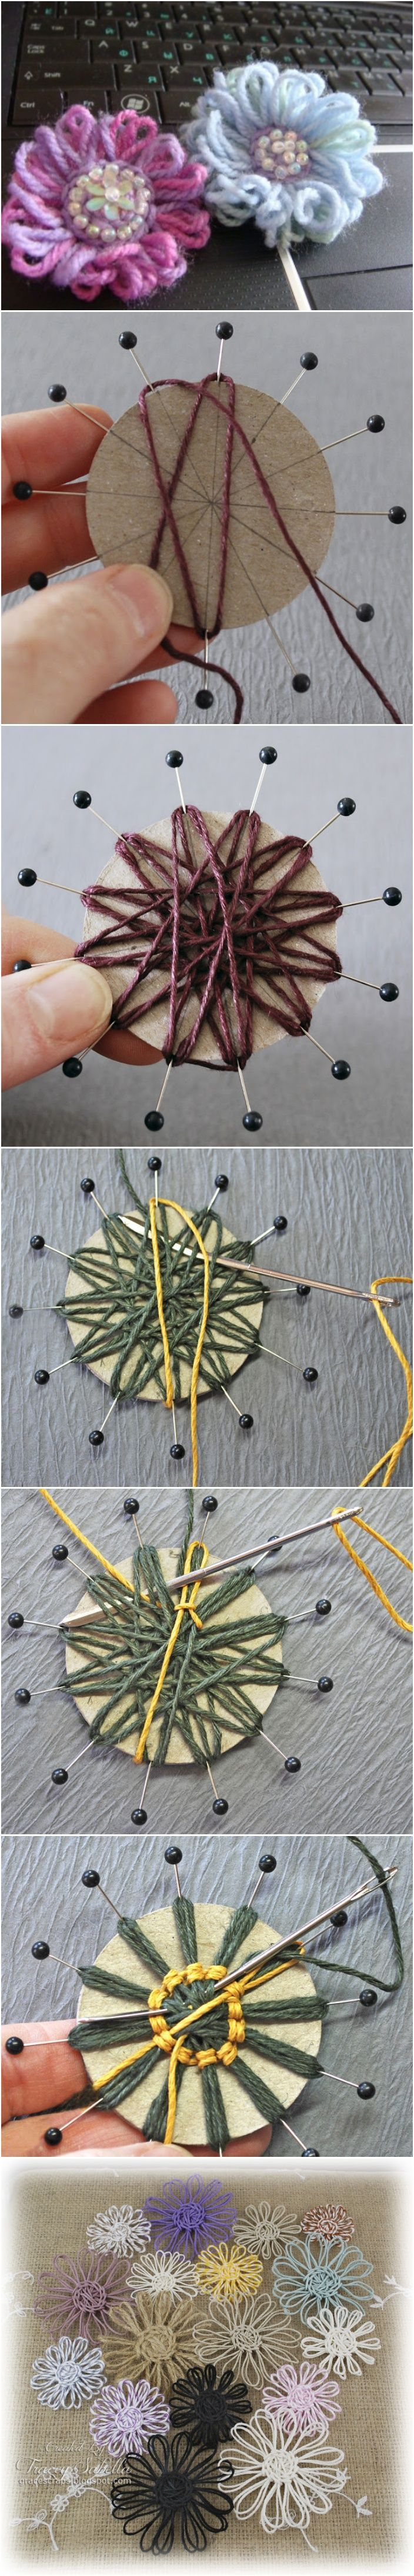 How to DIY Twine Flower With Cardboard